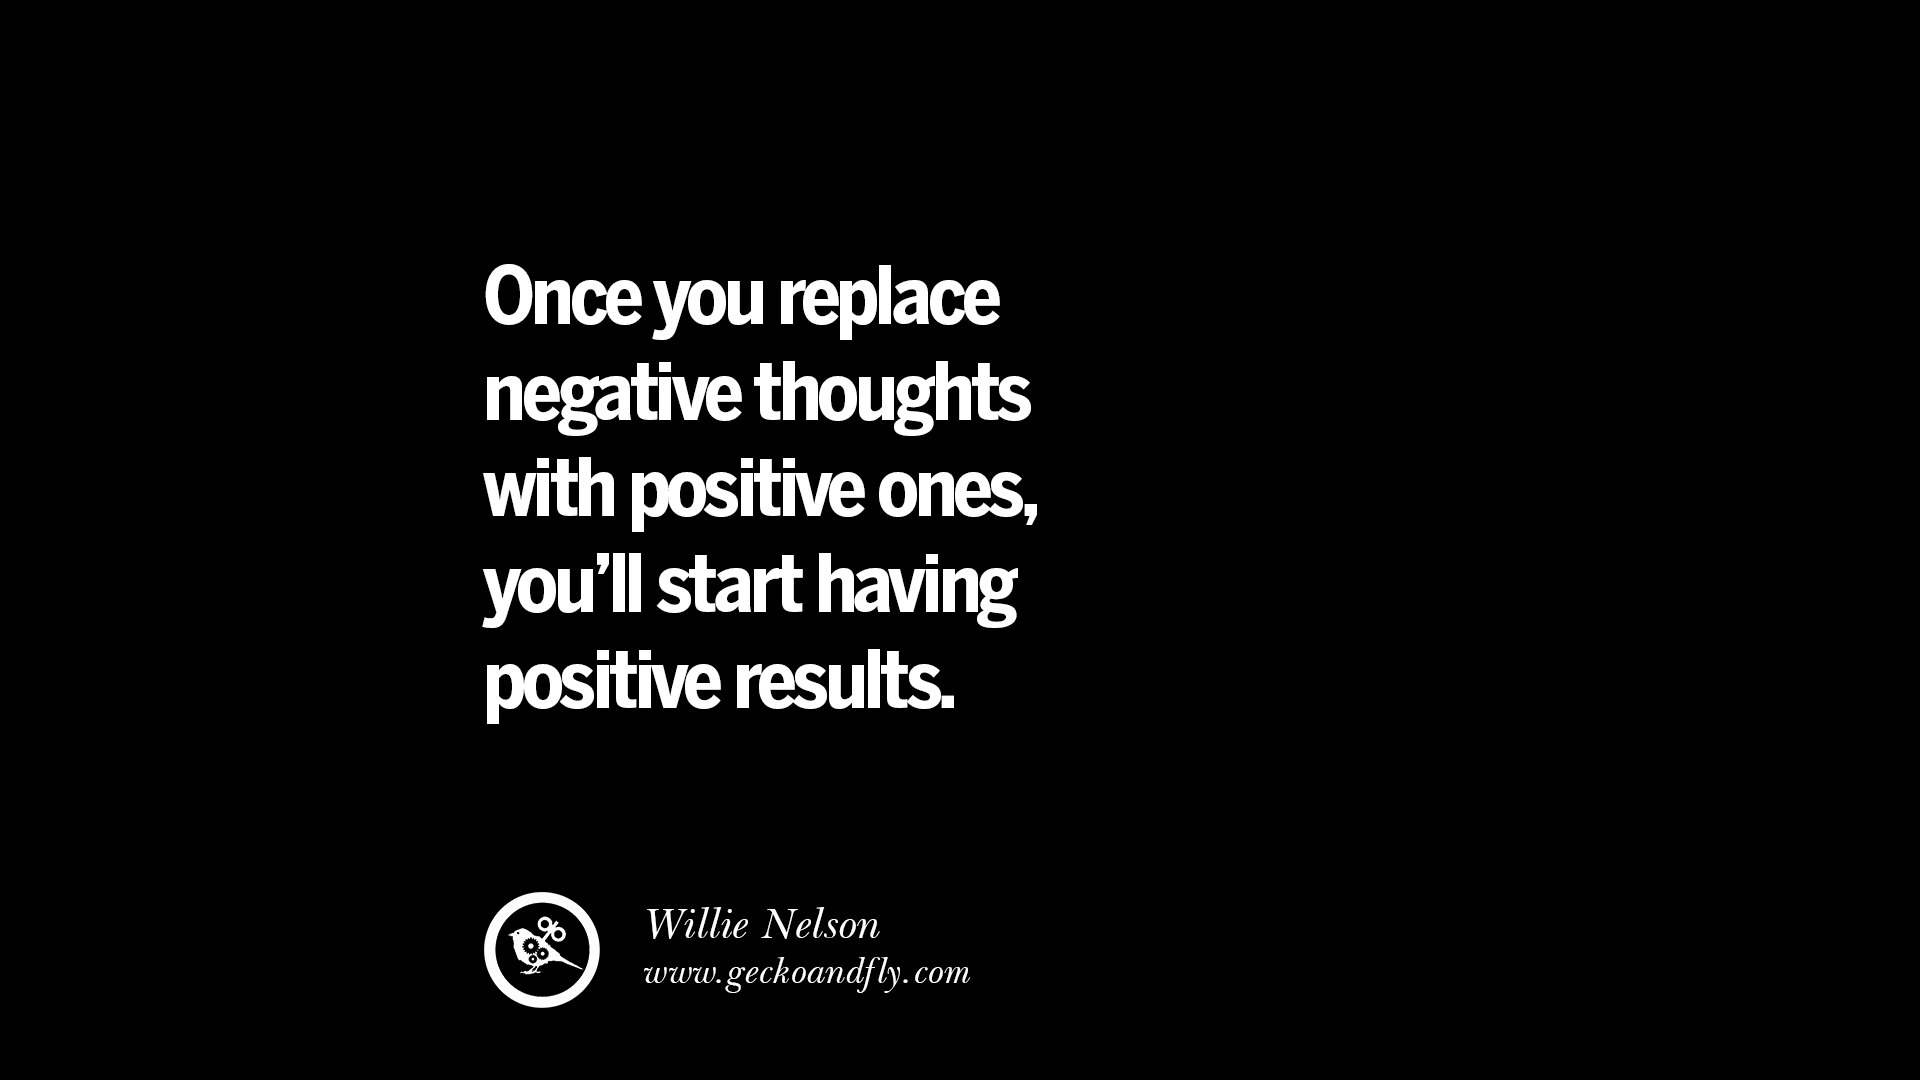 Power Of Positive Thinking Quotes 20 Inspirational Quotes On Positive Thinking Power And Thoughts